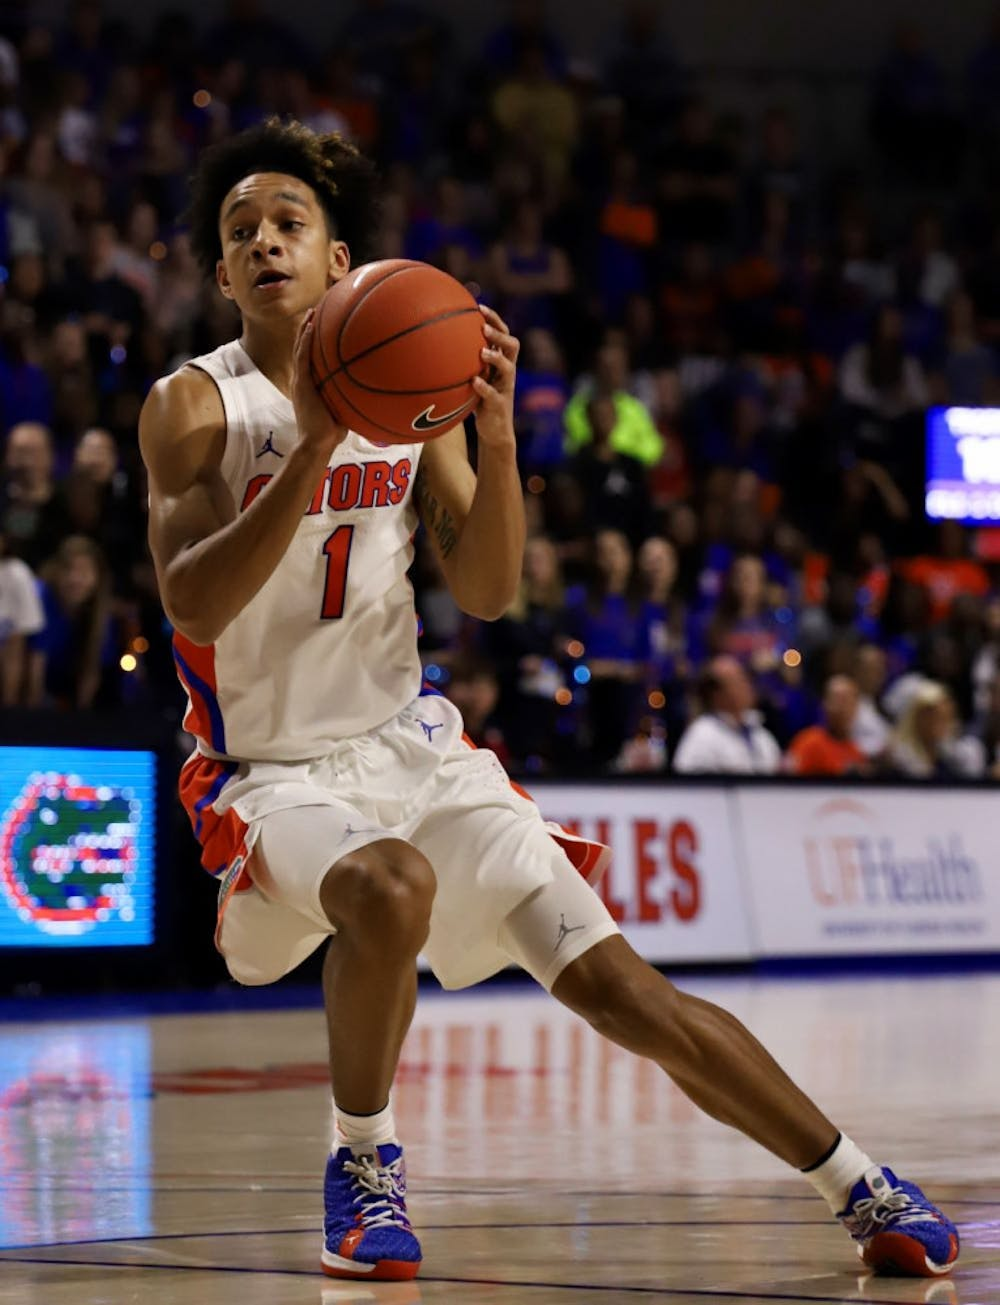 <p>The #Gators will play two games in the <span>Mohegan Sun at Connecticut this week to start their 2020-2021 season.</span></p>